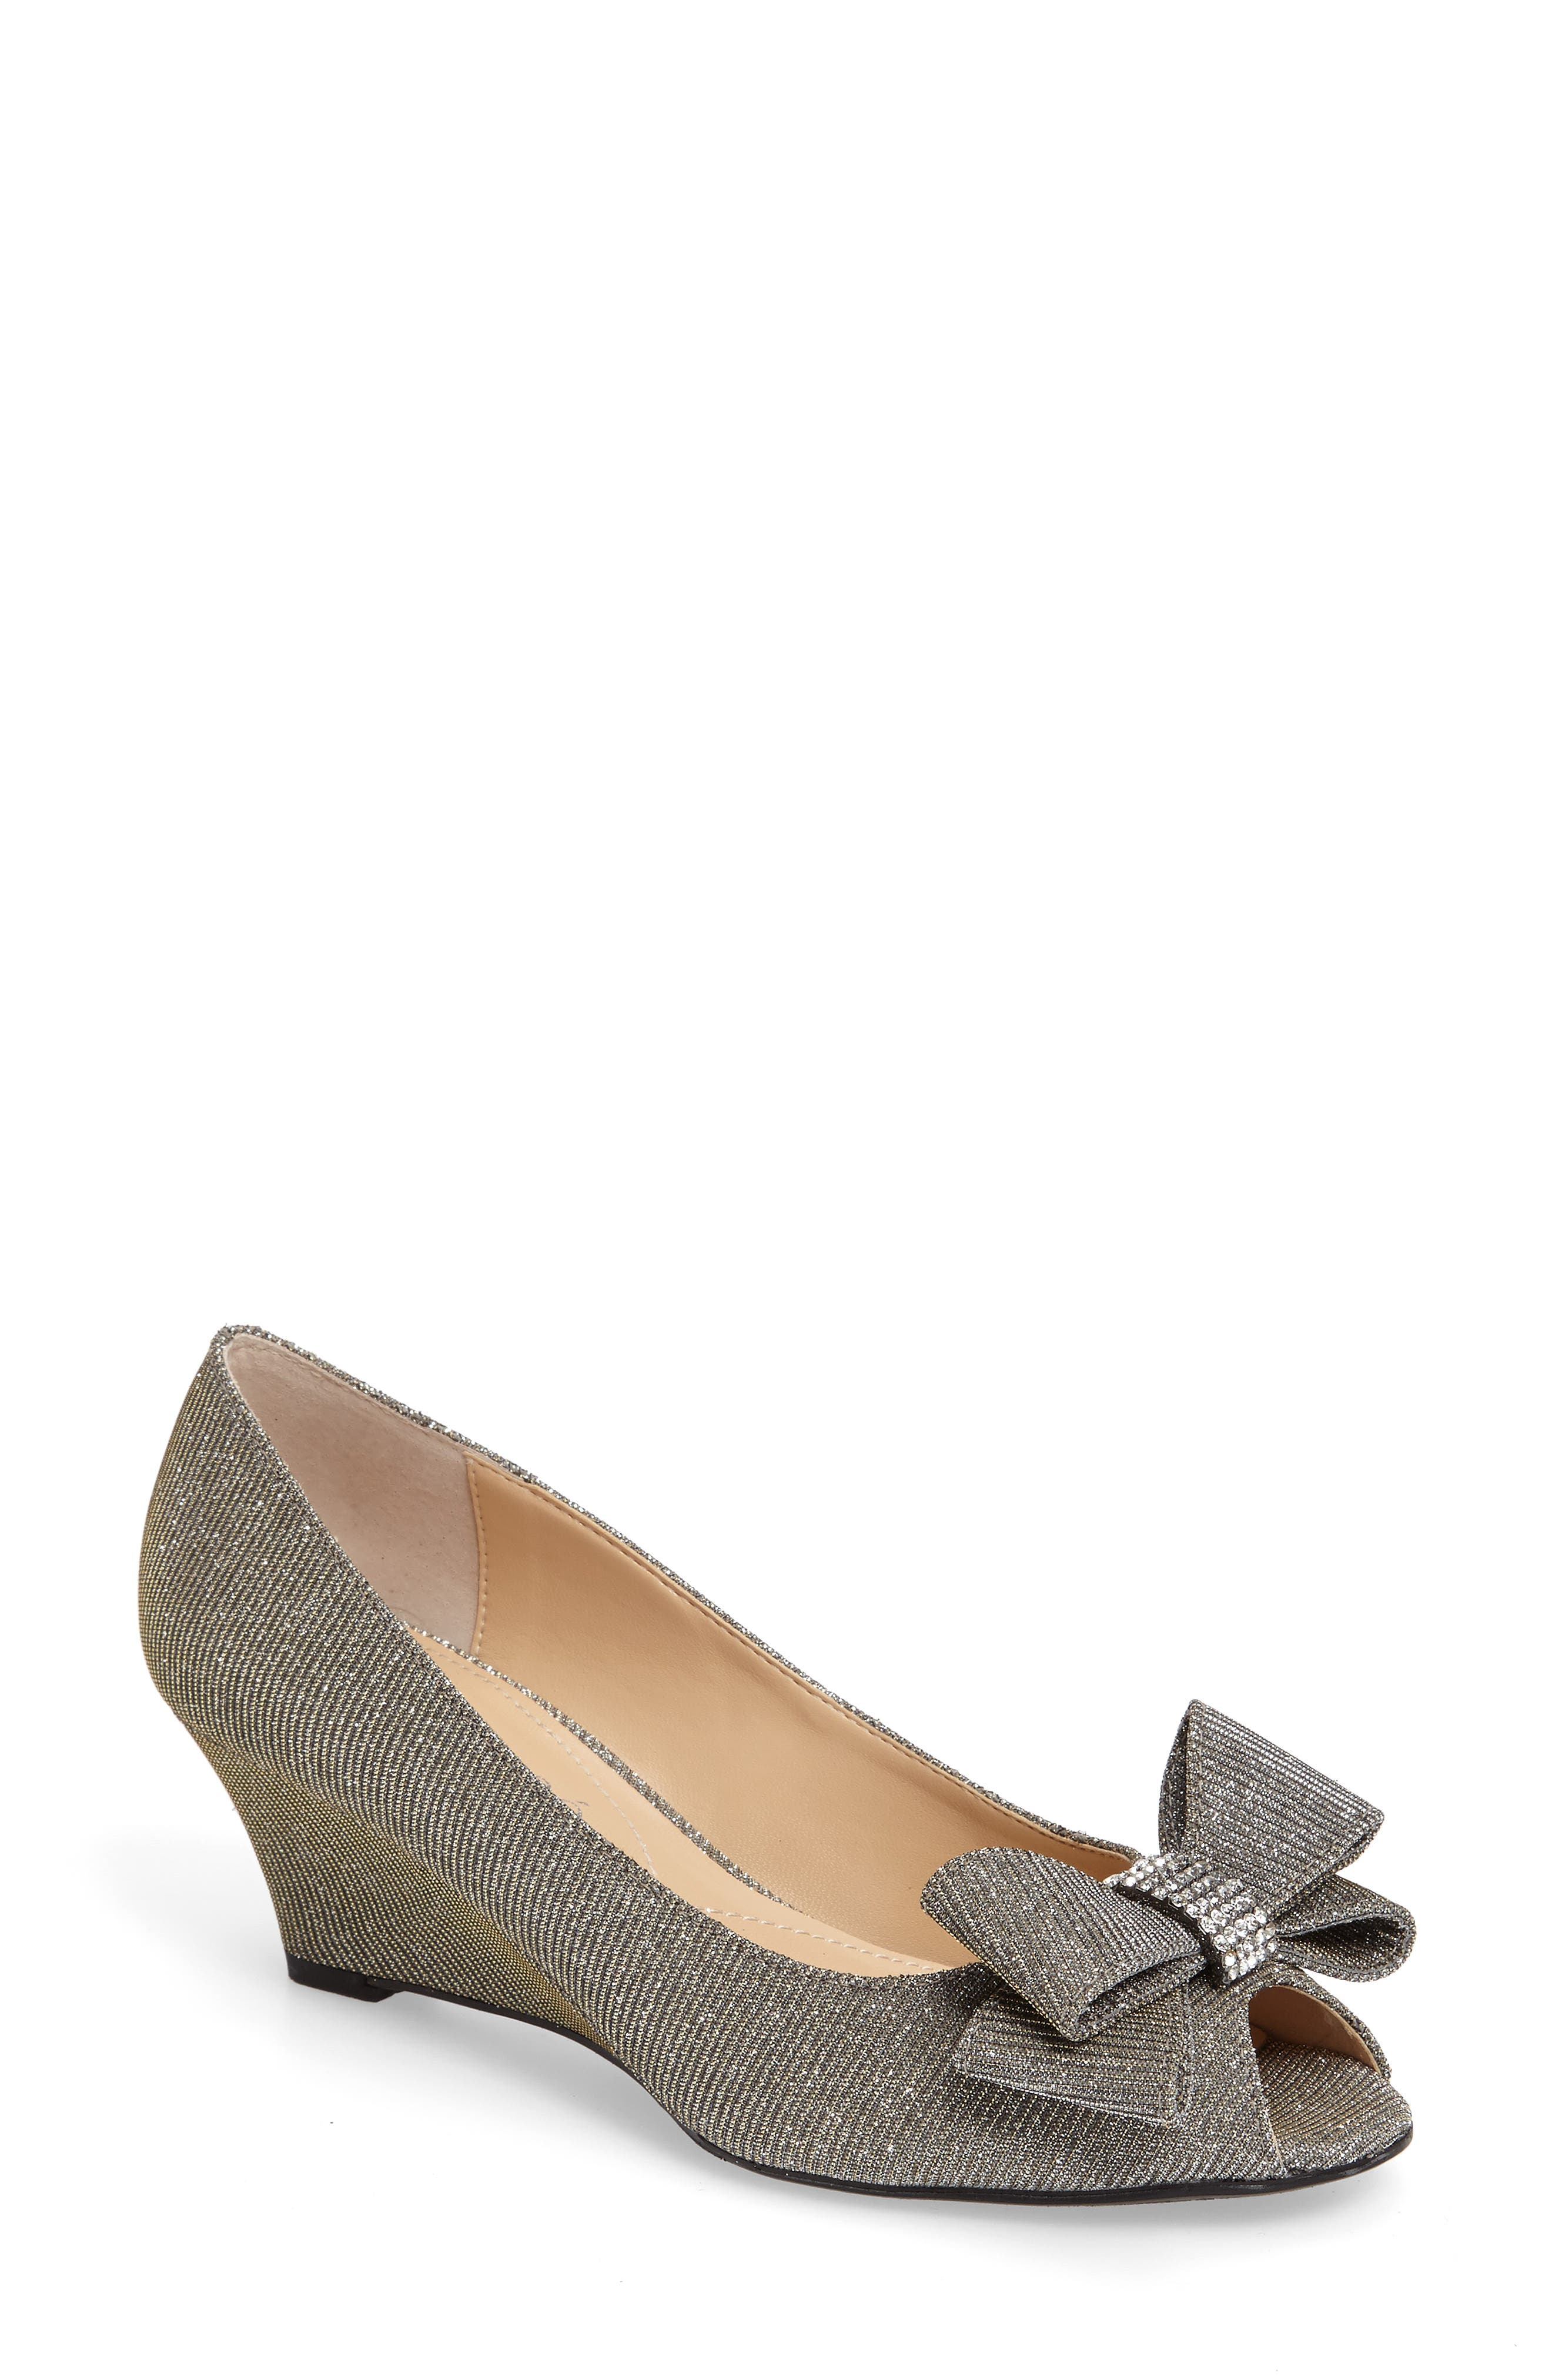 J. Reneé 'Blare' Bow Wedge Peep Toe Pump (Women)